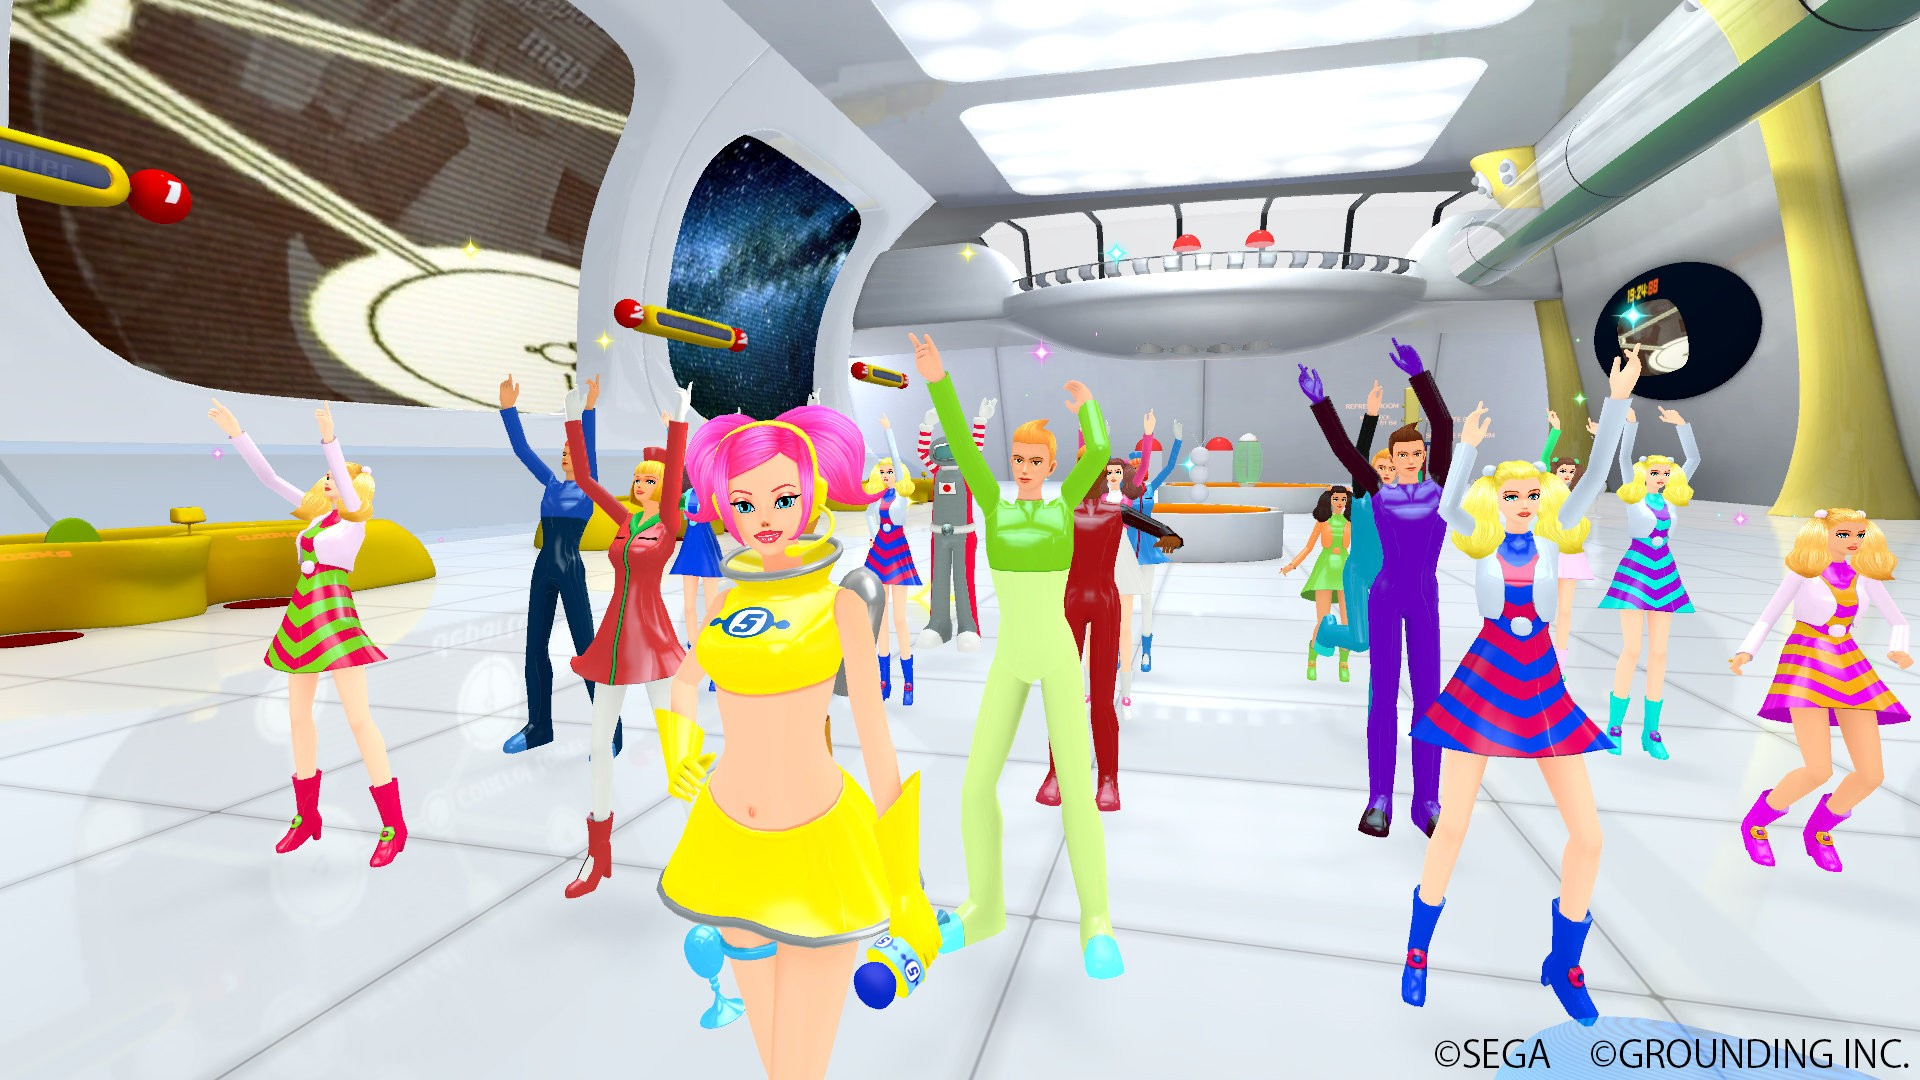 Action, dancing, Great Soundtrack, Grounding Inc, Music, PlayStation VR, PS4, PS4 Review, PSVR, PSVR Review, Rhythm, SEGA, Space Channel 5 VR, Space Channel 5 VR Review